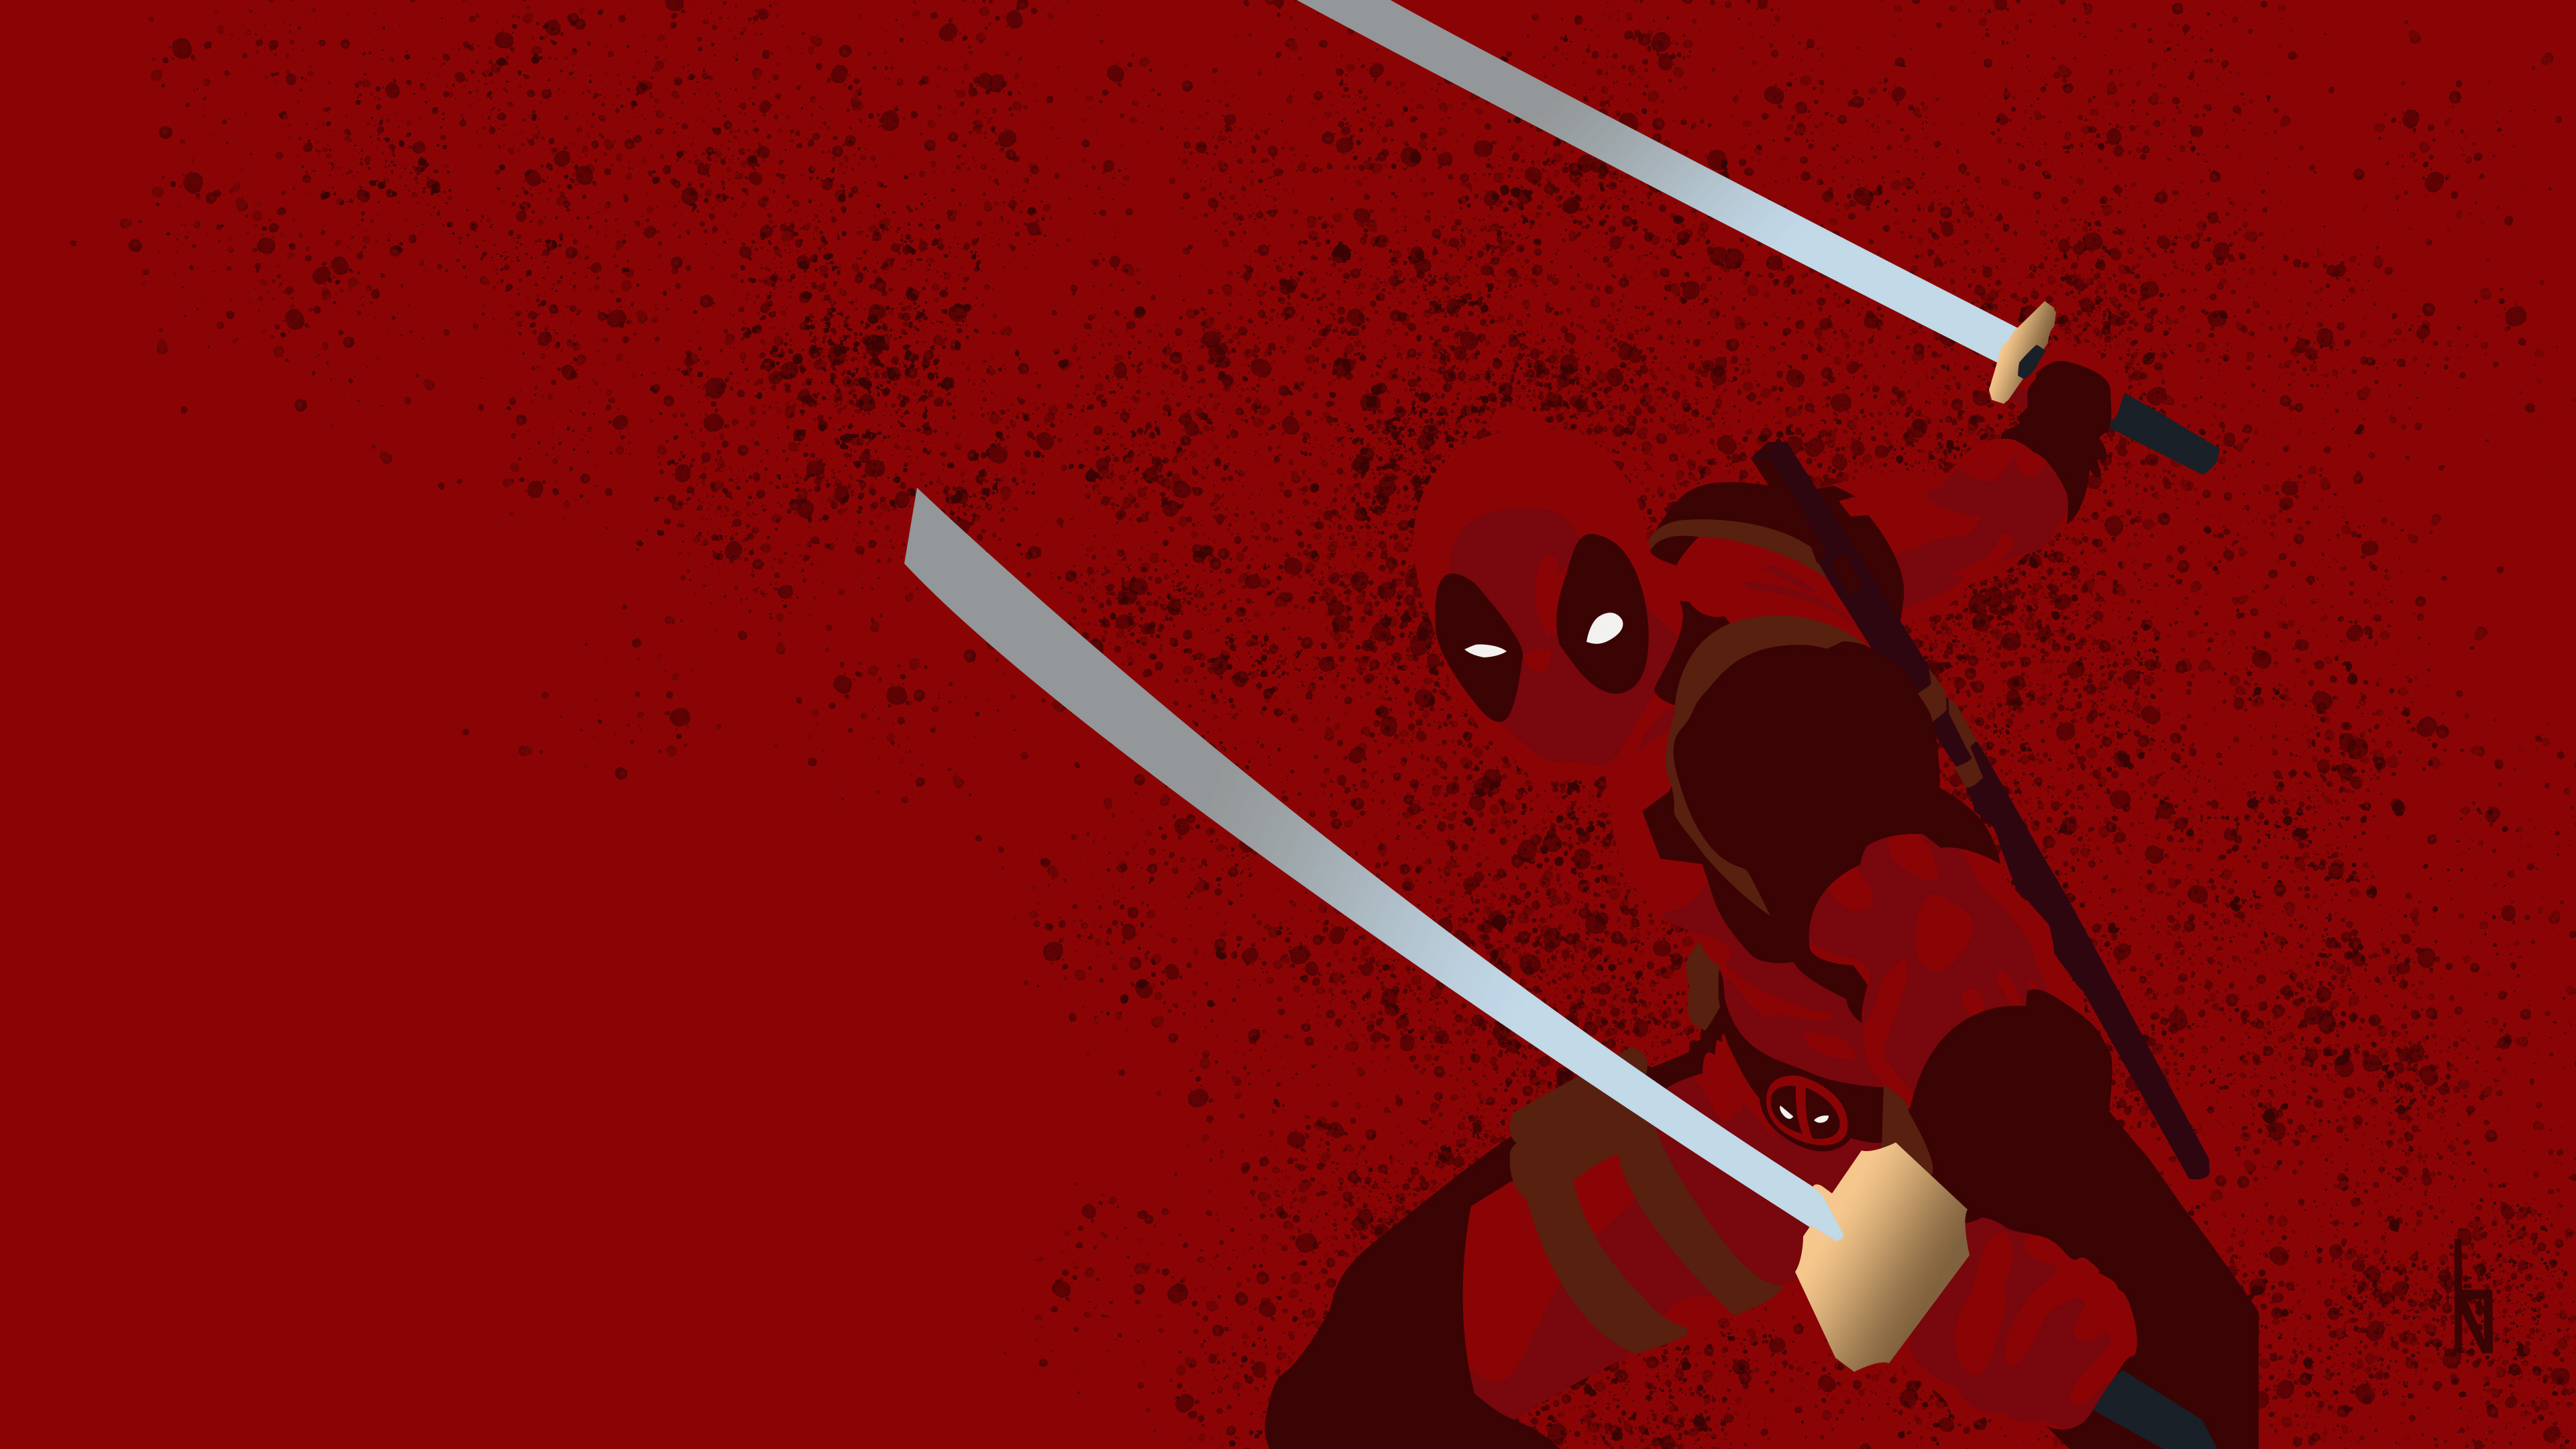 Wallpaper 4k Deadpool Minimalist Background 4k 4k Wallpapers Artist